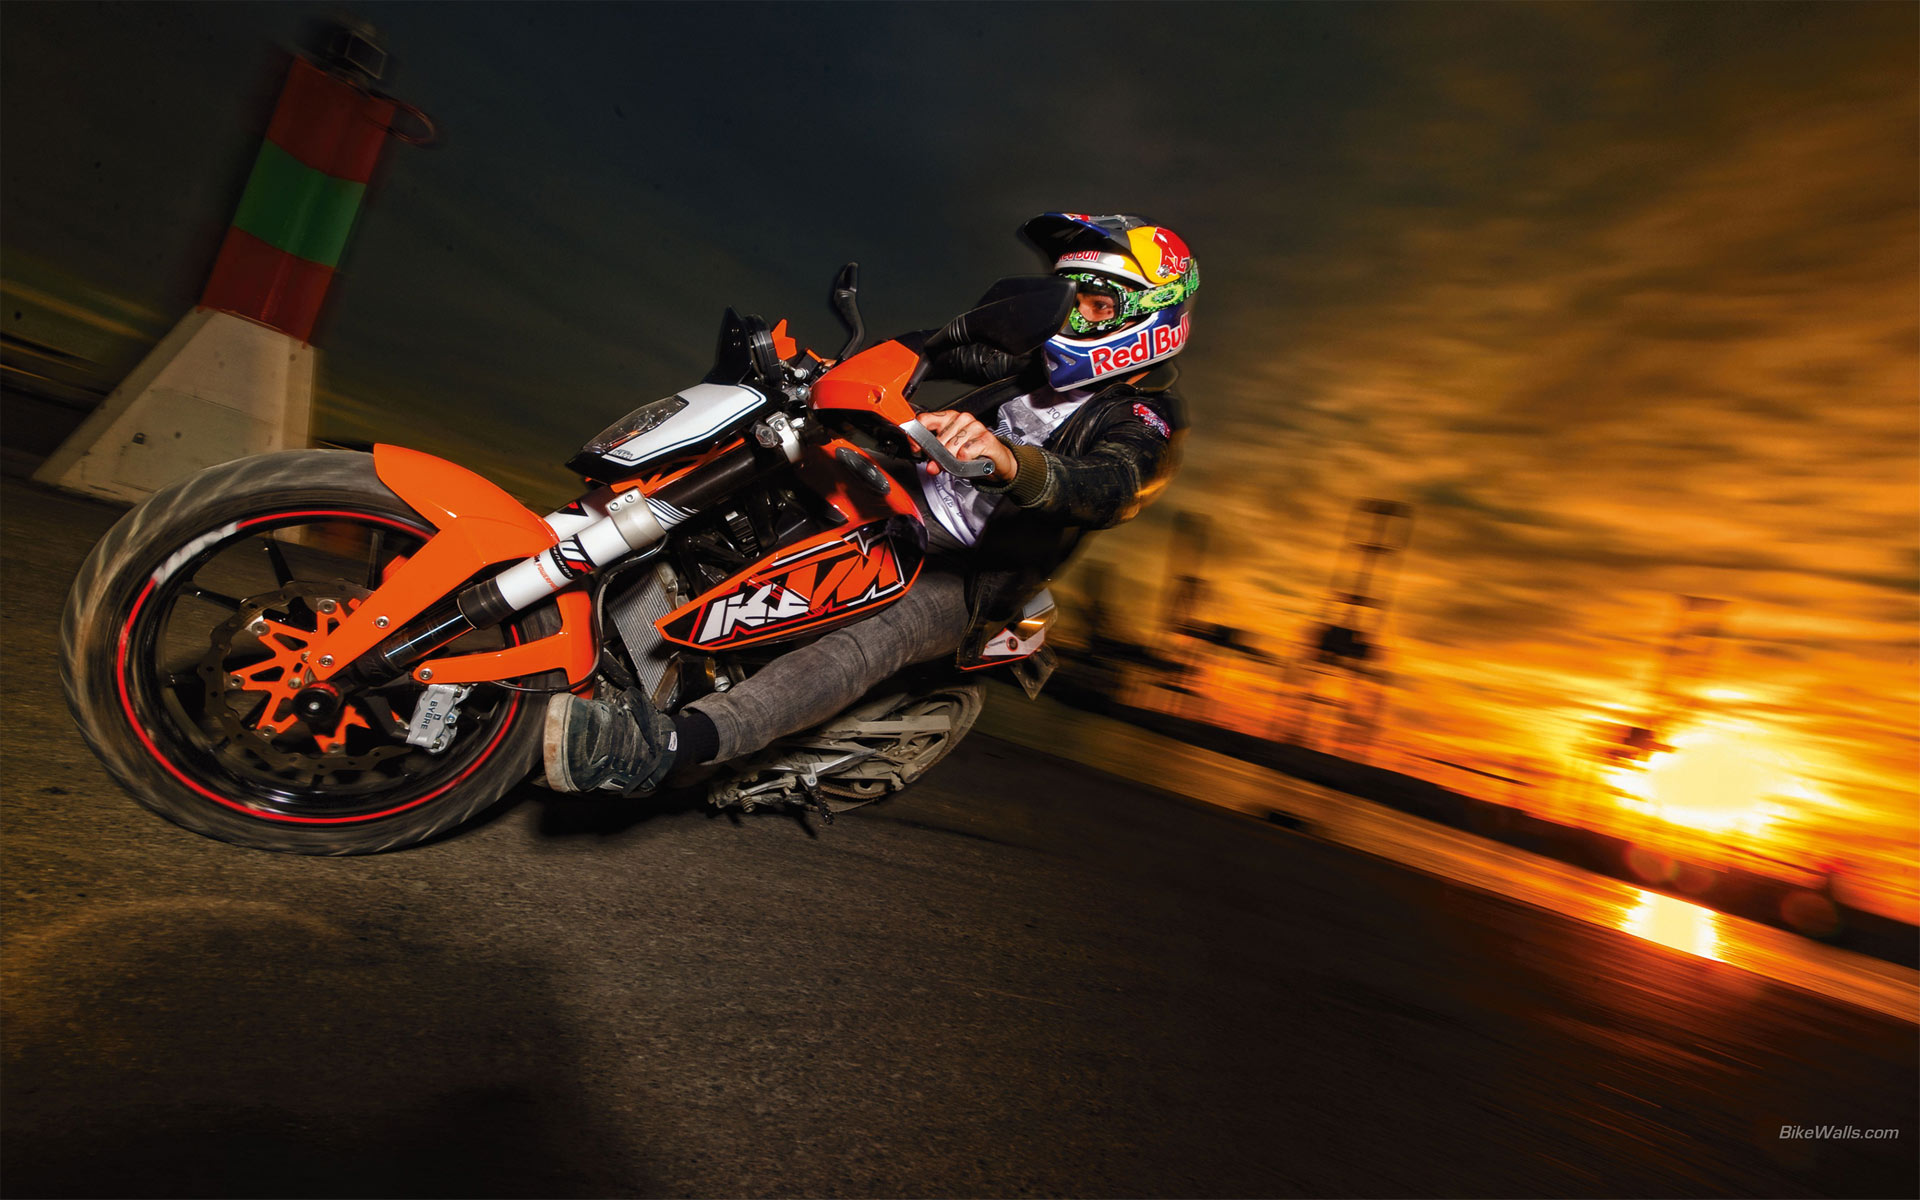 KTM 125 Duke Desktop wallpapers 49967 1920x1200